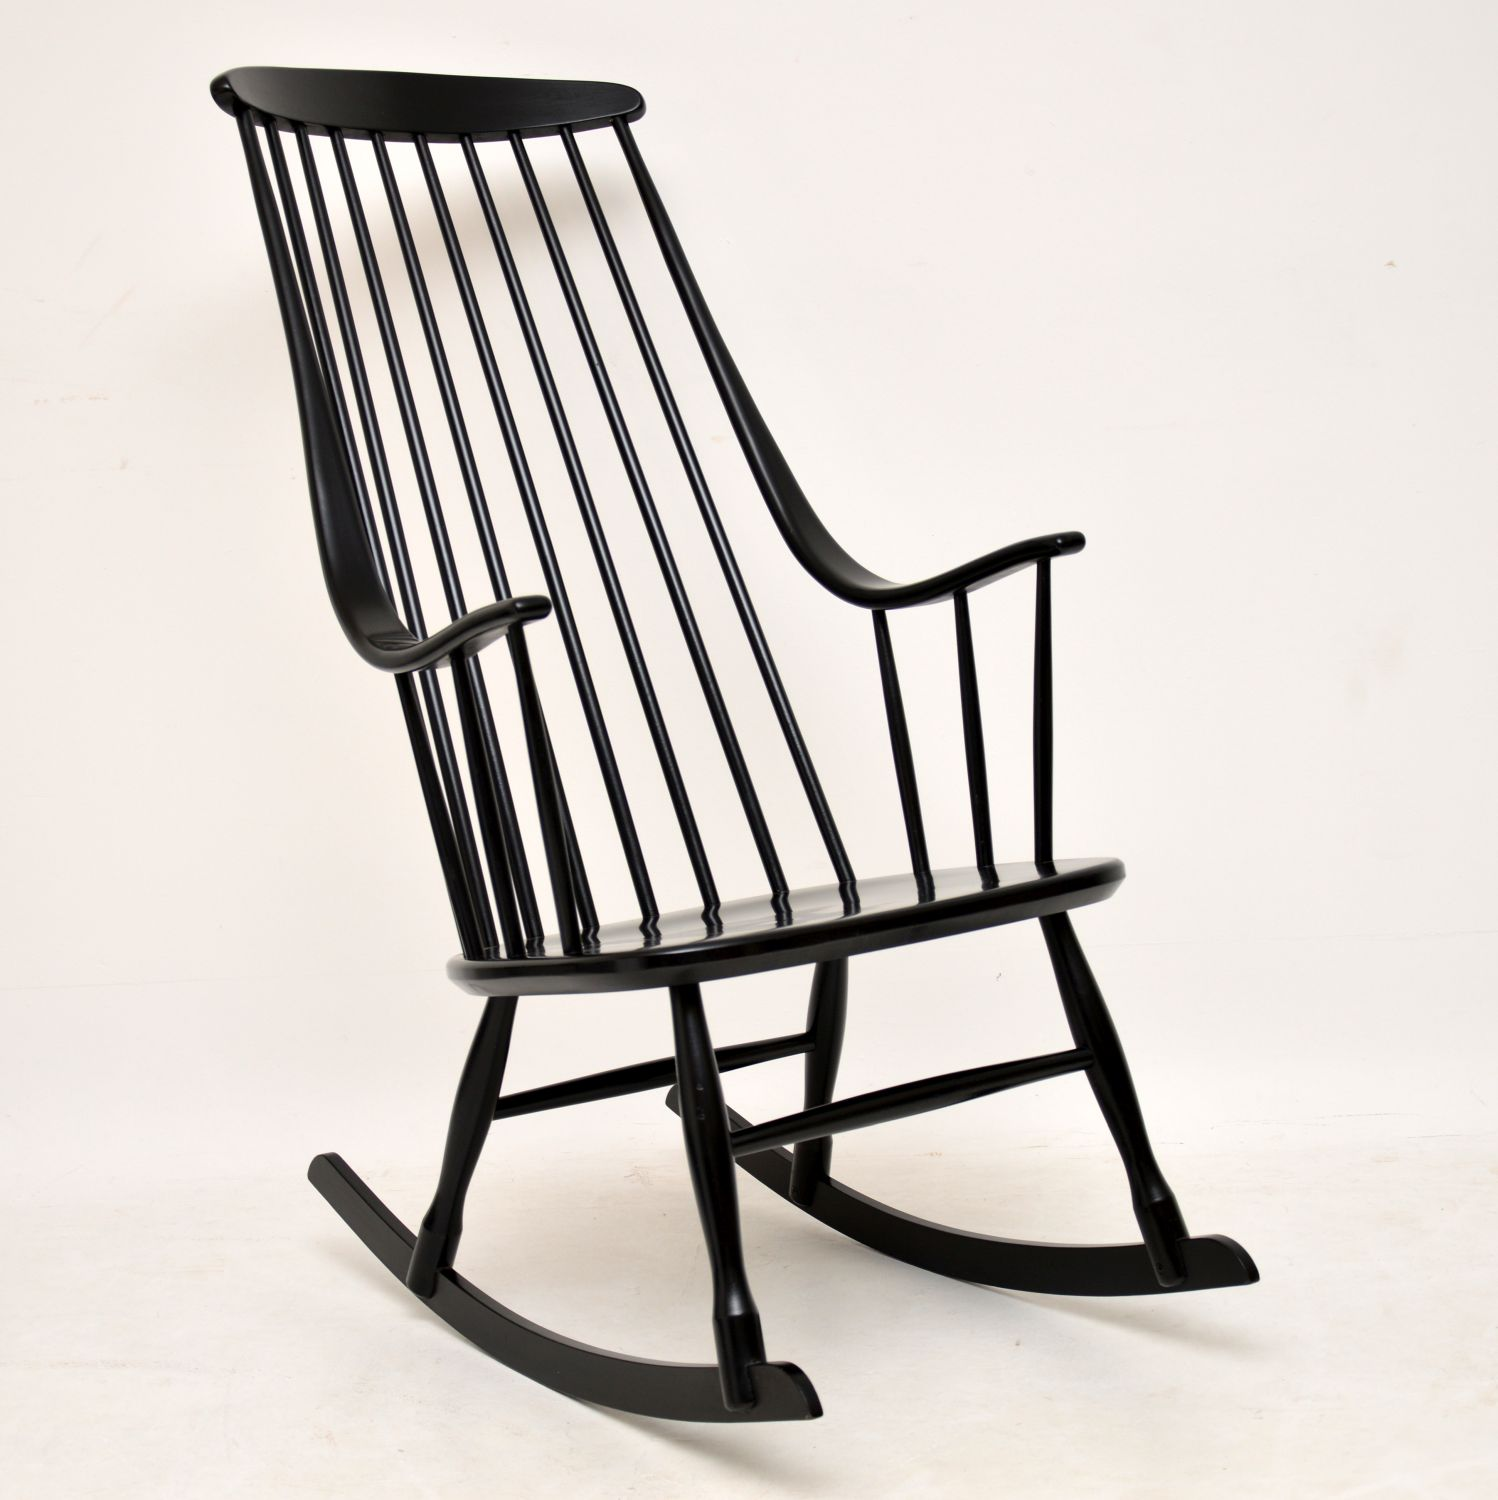 retro vintage scandinavian rocking chair armchair ilmari tapiovaara